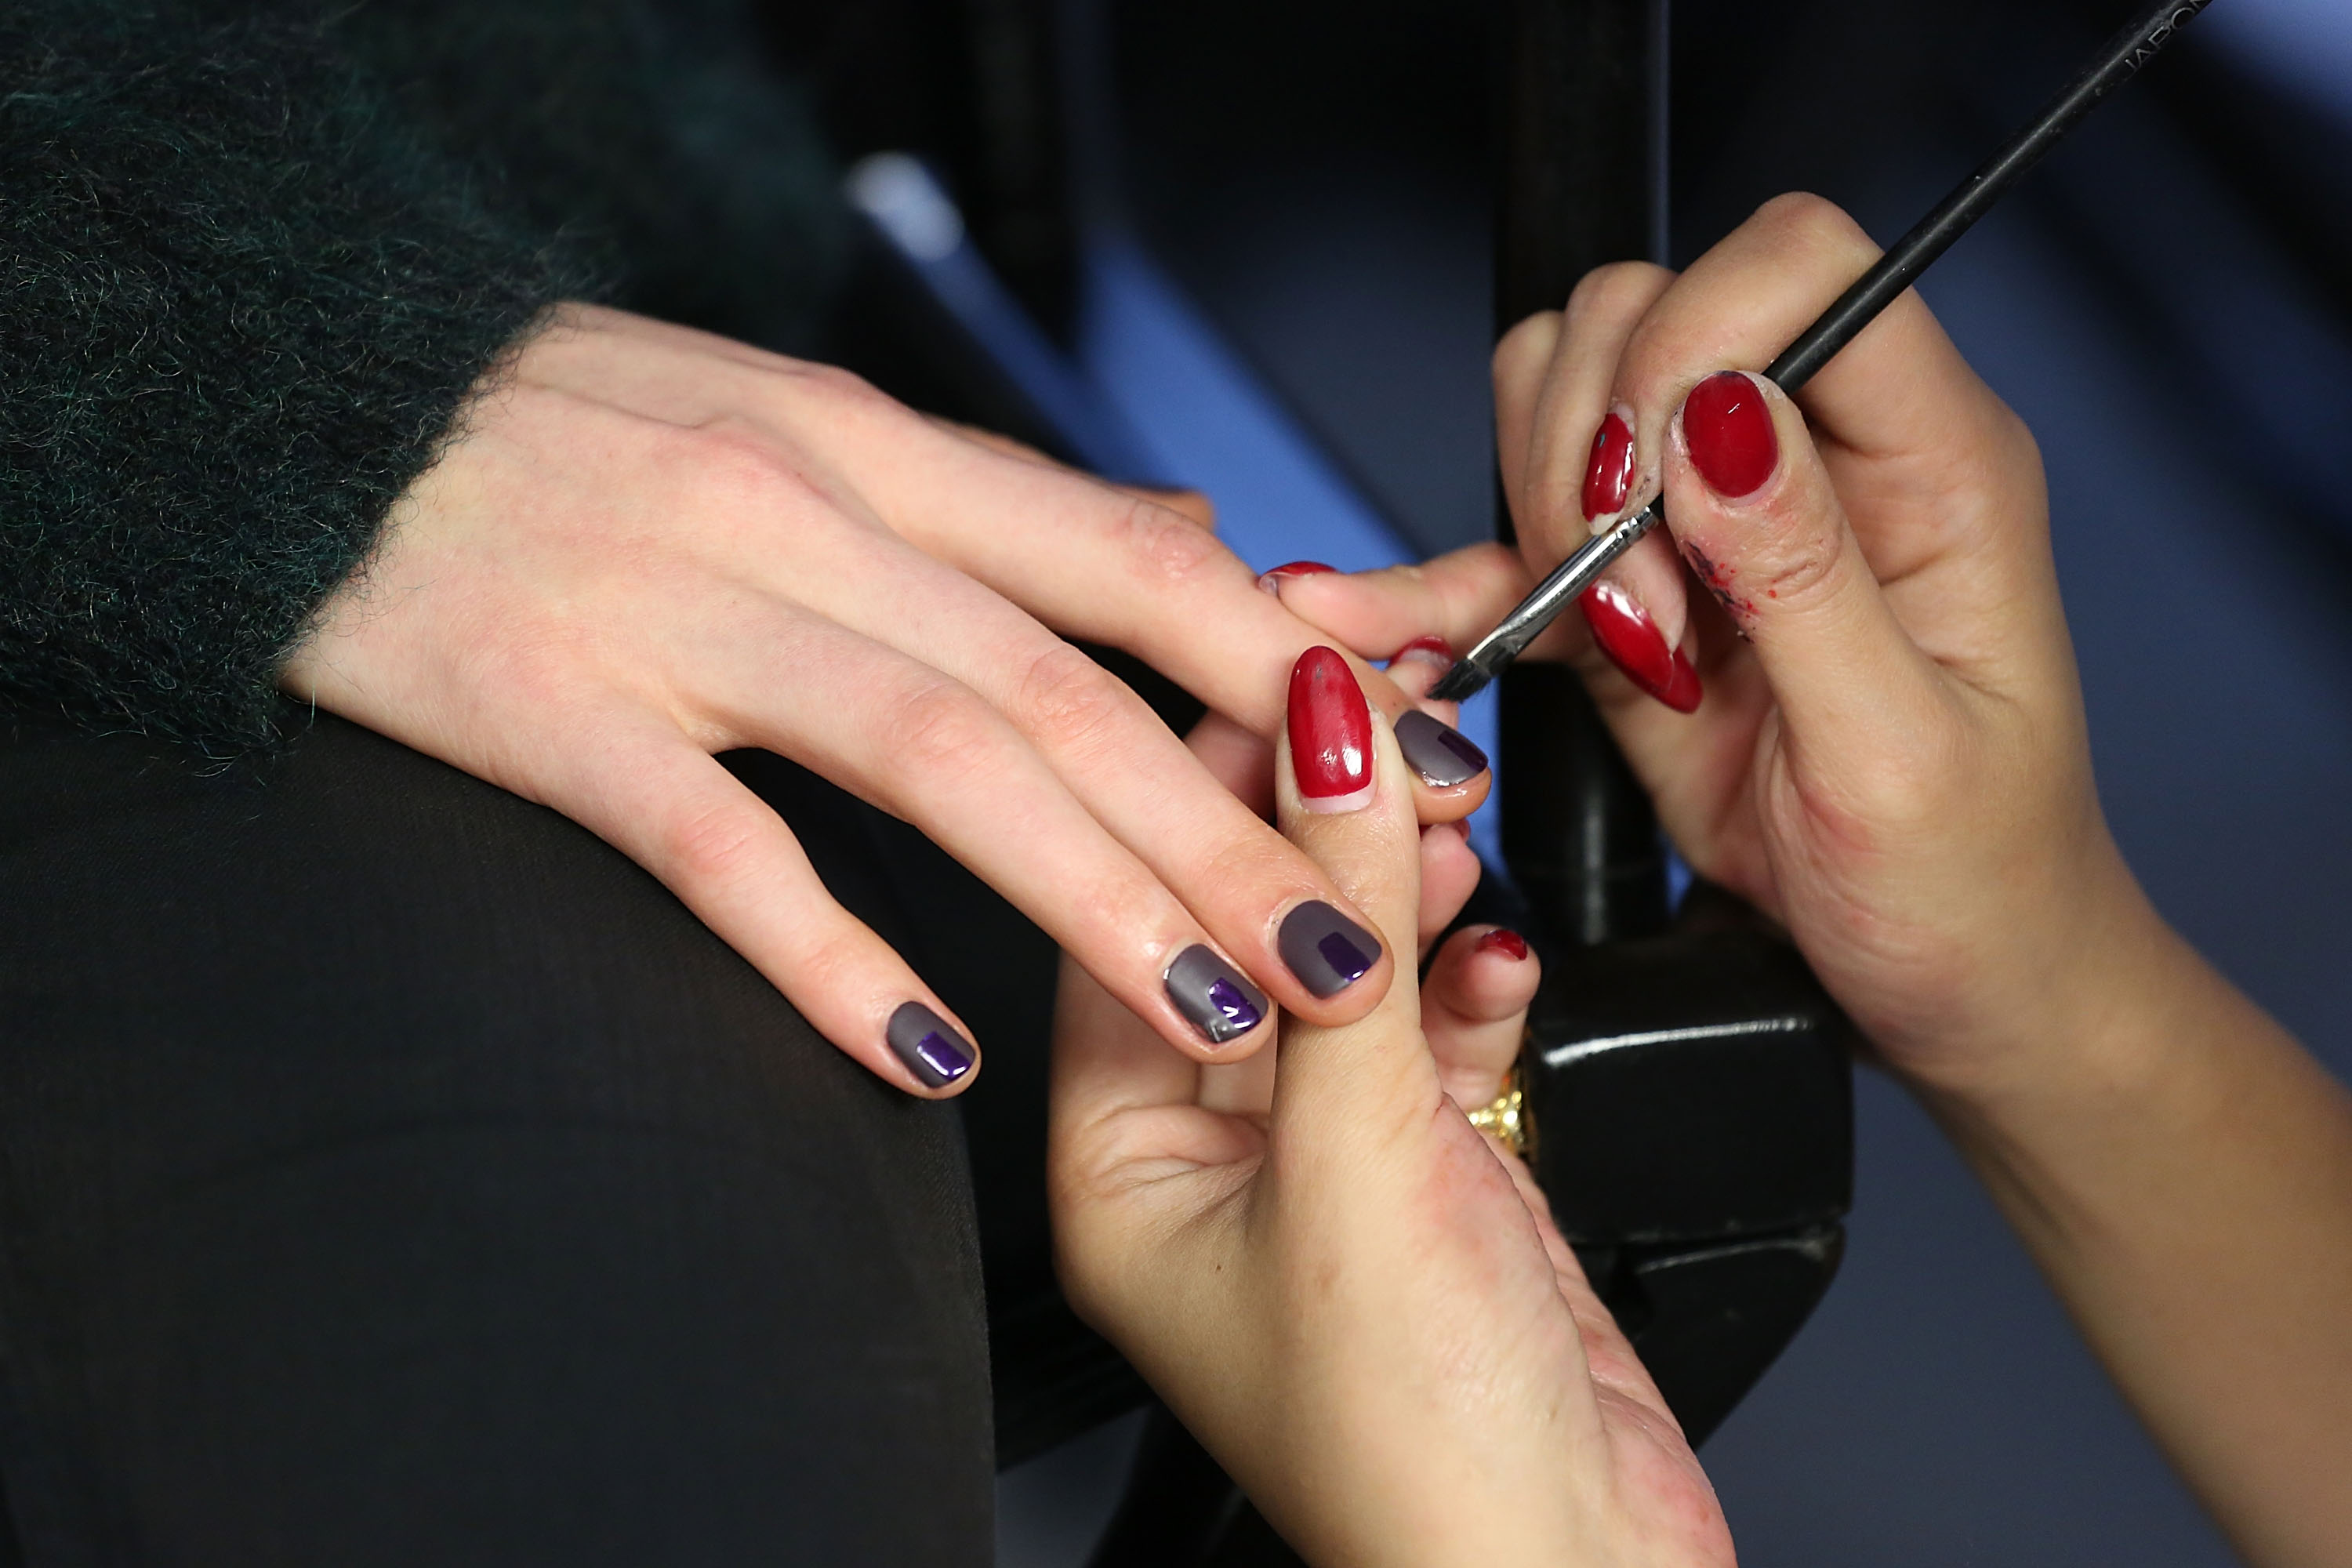 13 Things You Should Never Do To Your Nails If You Want Those Talons